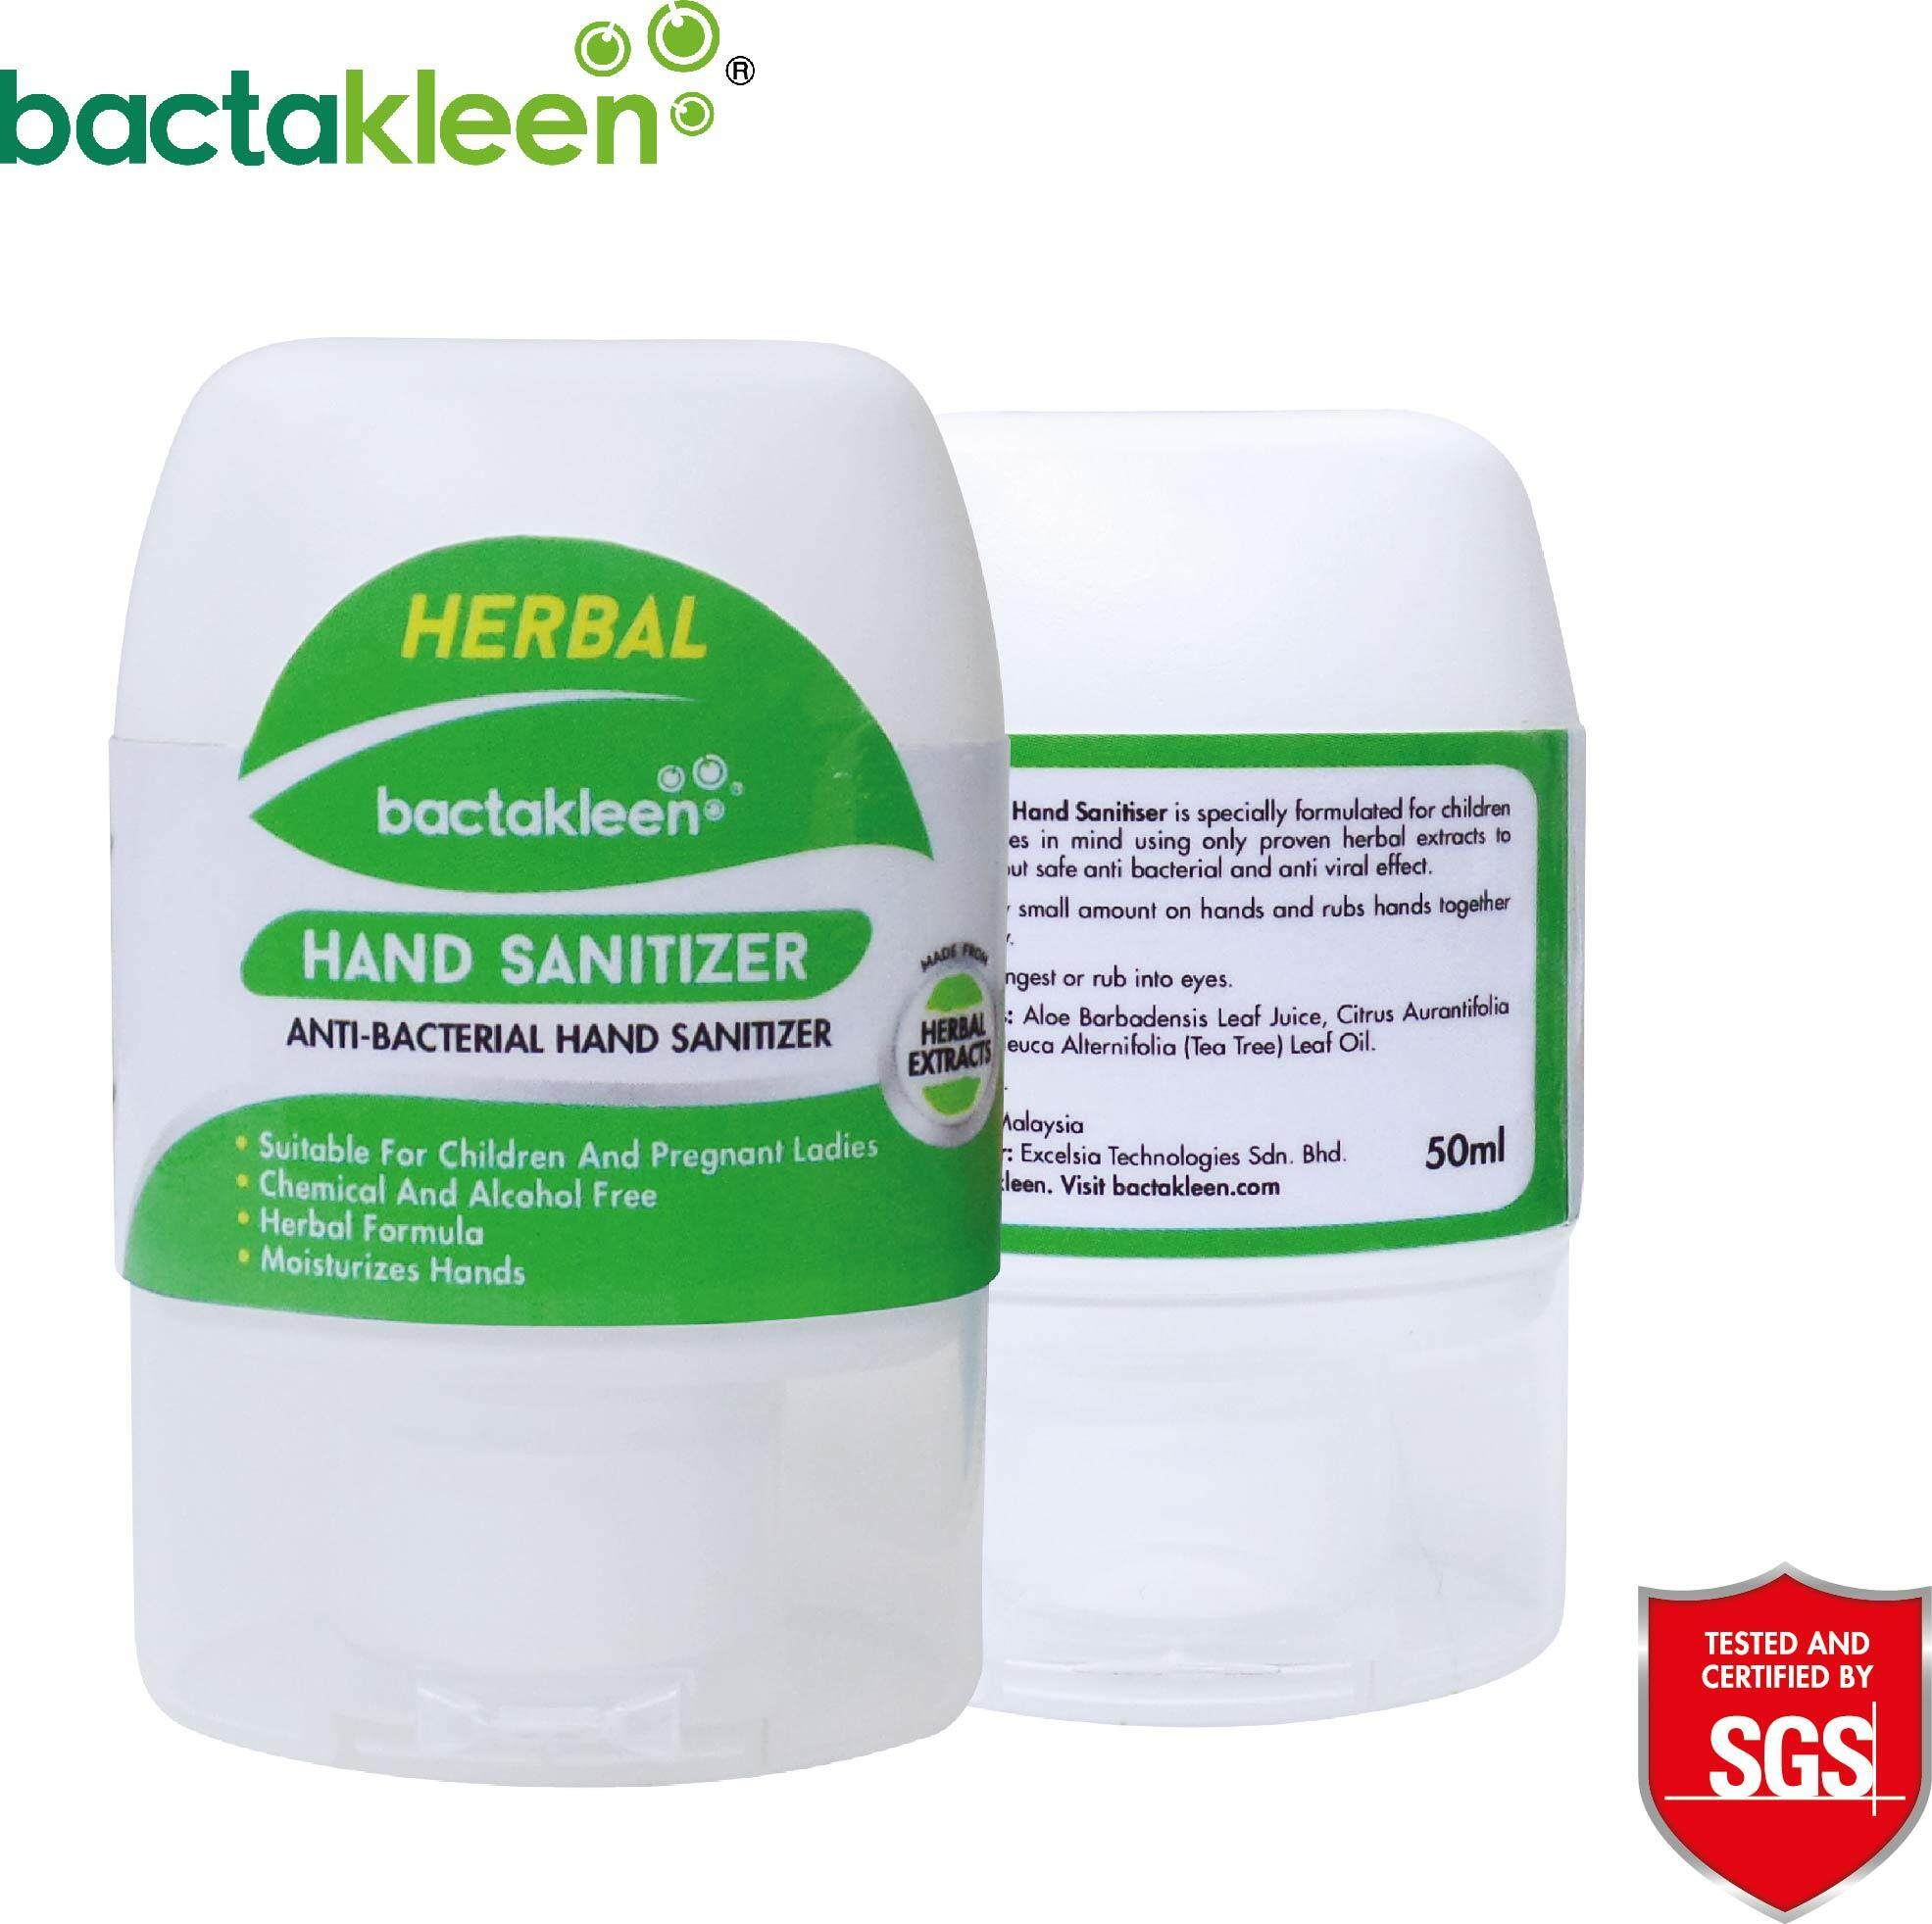 Hand Washes And Sanitizers Buy At Best Dettol Sanitizer Original 50 Ml 4 Pcs Herbal 50ml By Bactakleen Alcohol Free Non Toxic